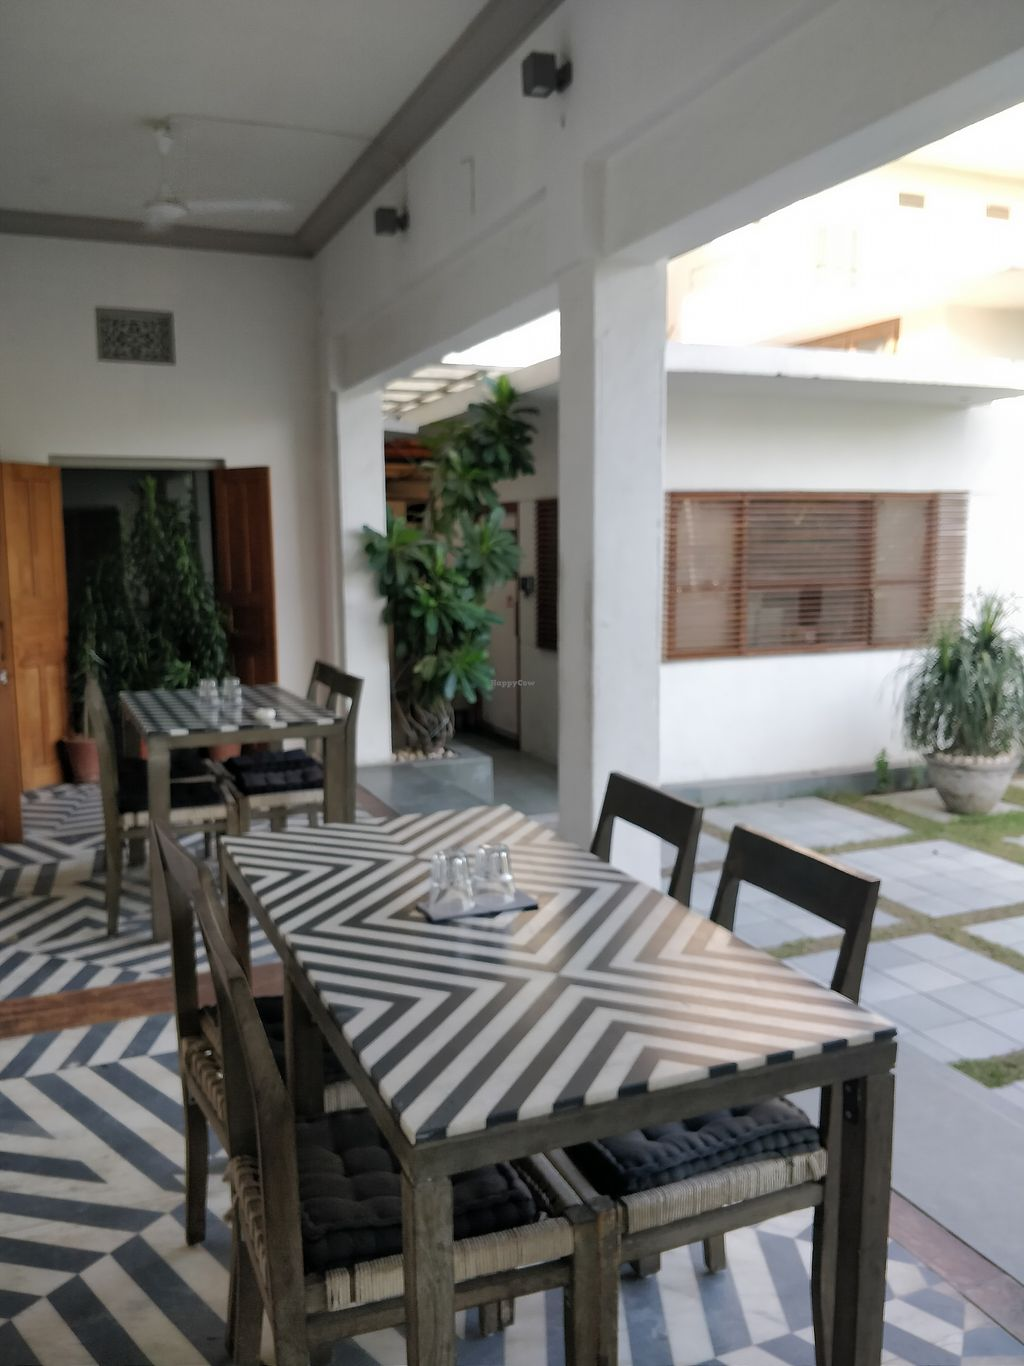 Beautiful and simple architecture at the kitchen at jaipur modern in jaipur